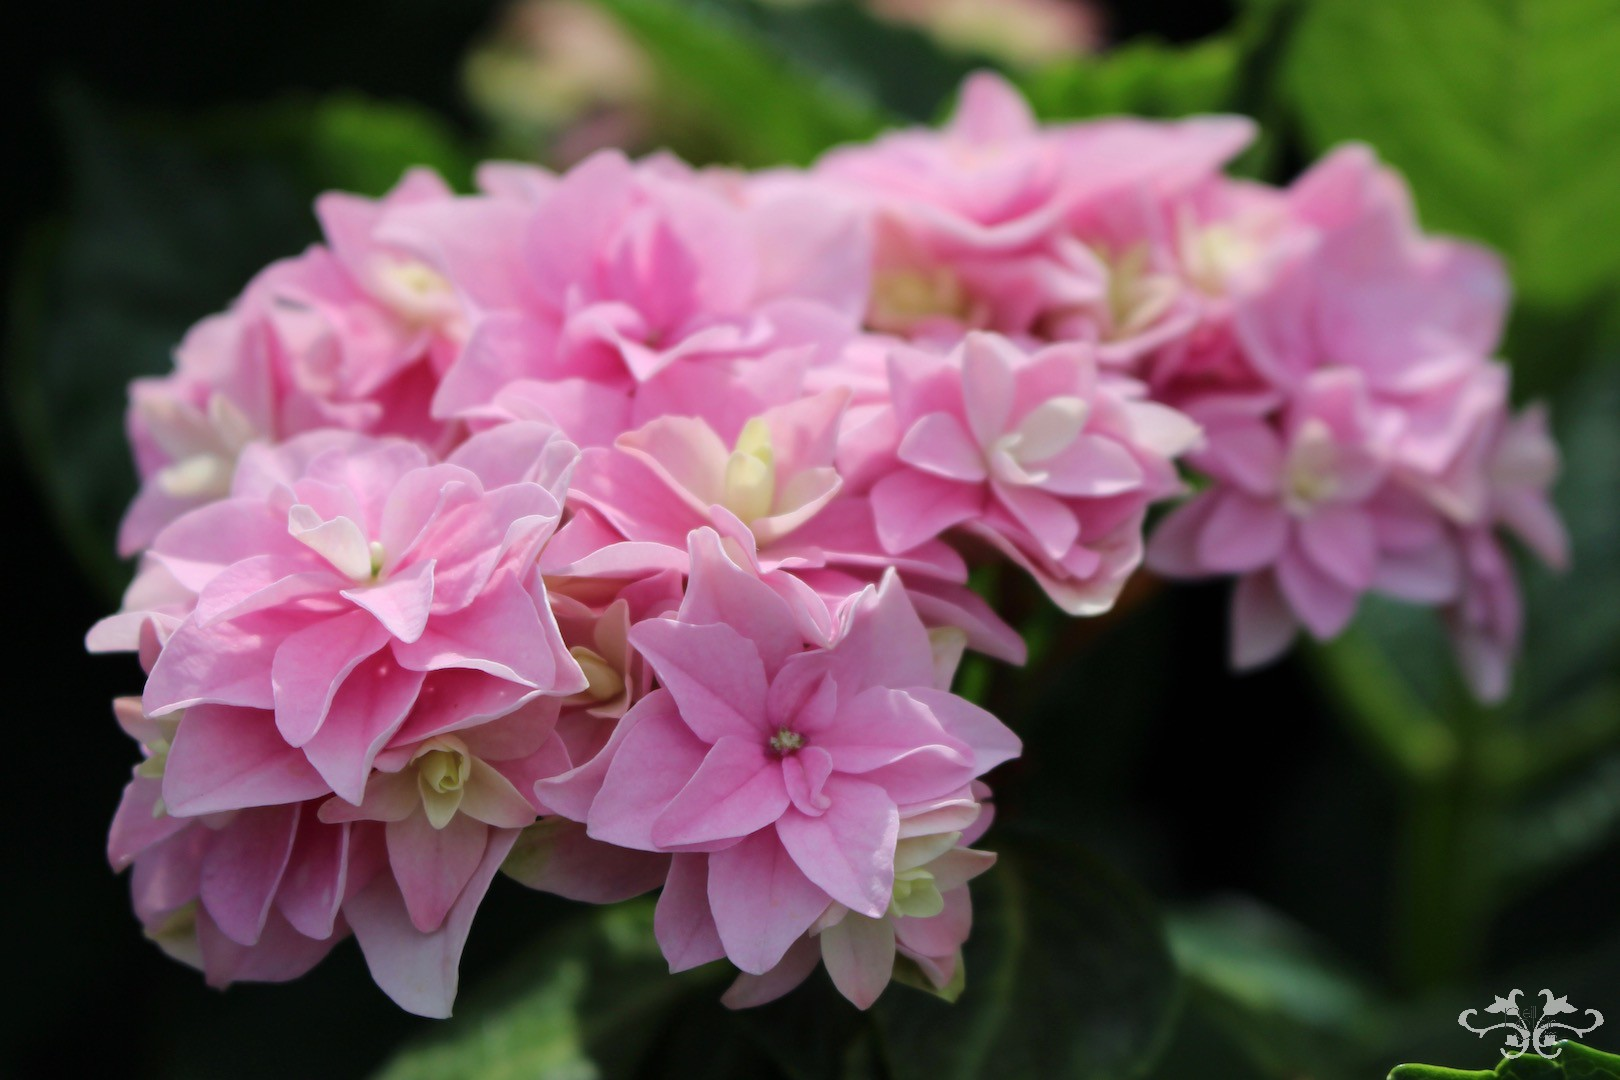 New varieties of Hydrangea being developed at Kolster in Holland